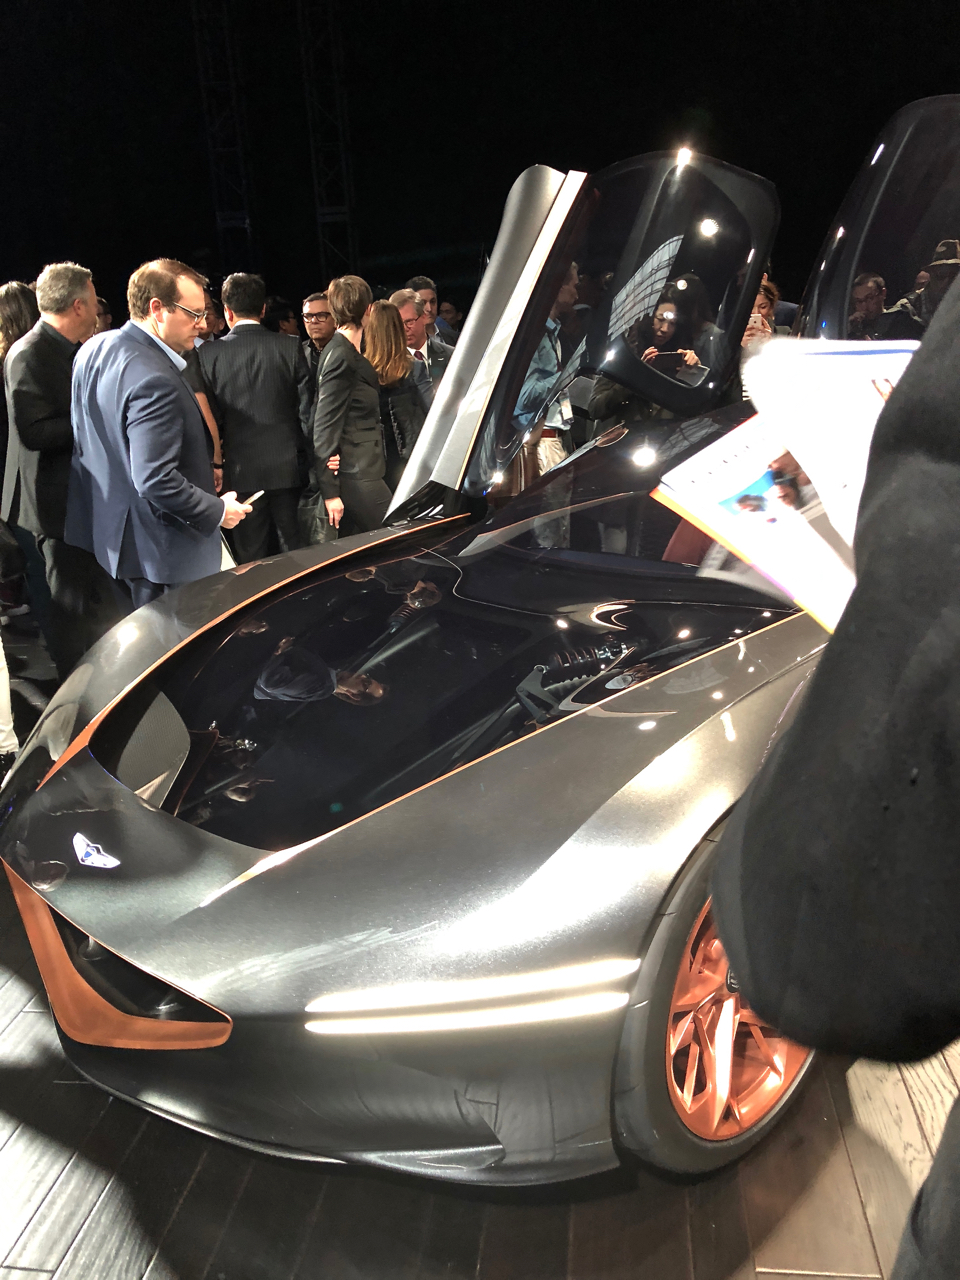 Caption: NYIAS 2018 Genisis, Credit: Tom Howell